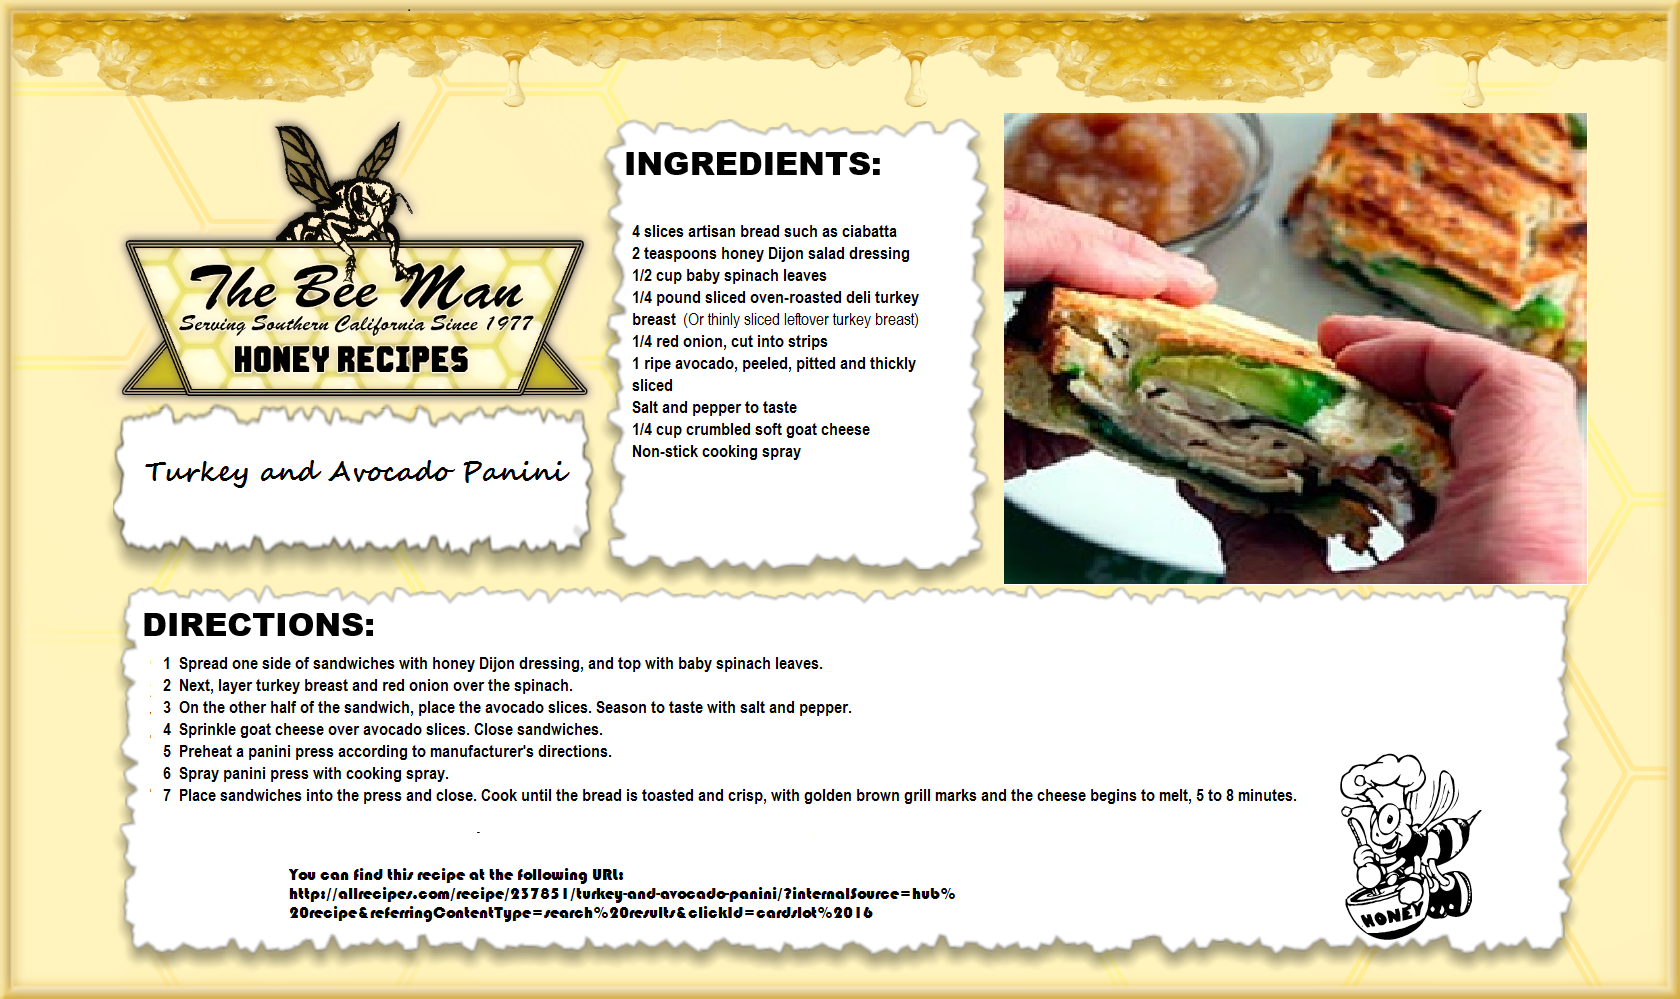 Here's a great way to enjoy leftover turkey meat in this yummy panini recipe!